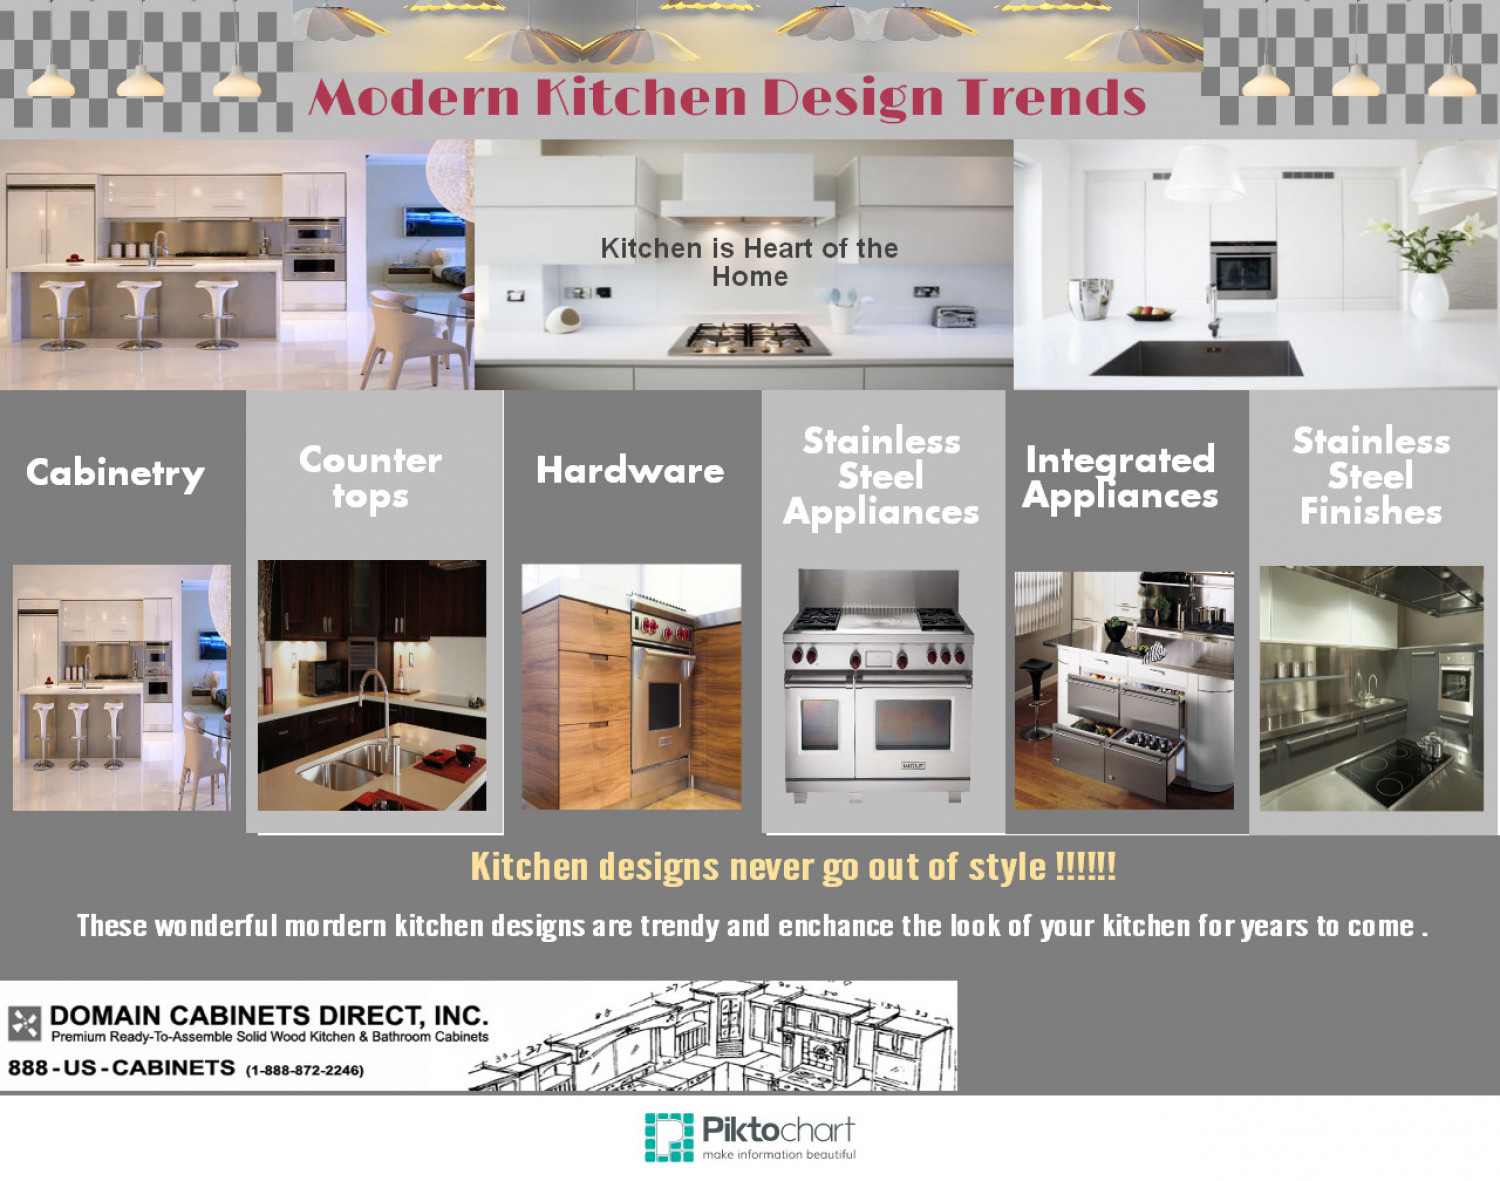 Modern kitchen design trends Modern kitchen design trends 2014